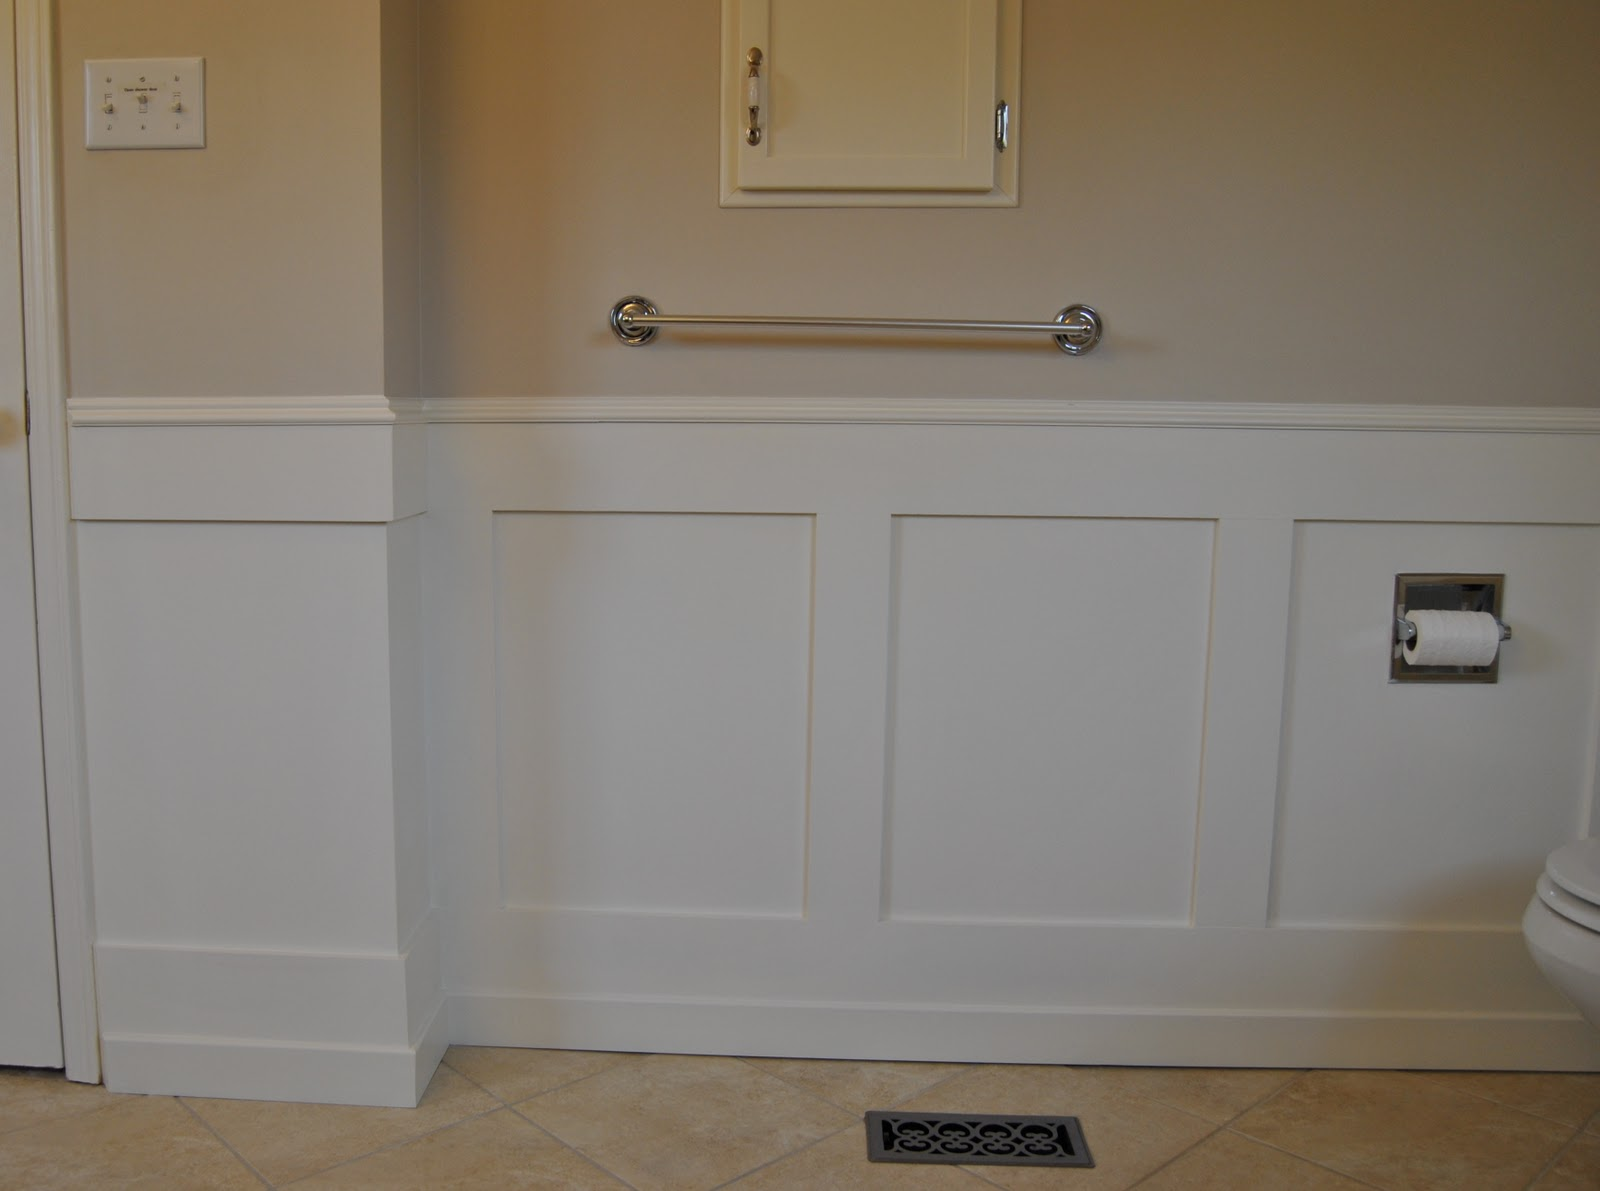 Bathroom sink vanity dimensions - Molding Dimensions My Husband Used To Create The Shaker Style Effect